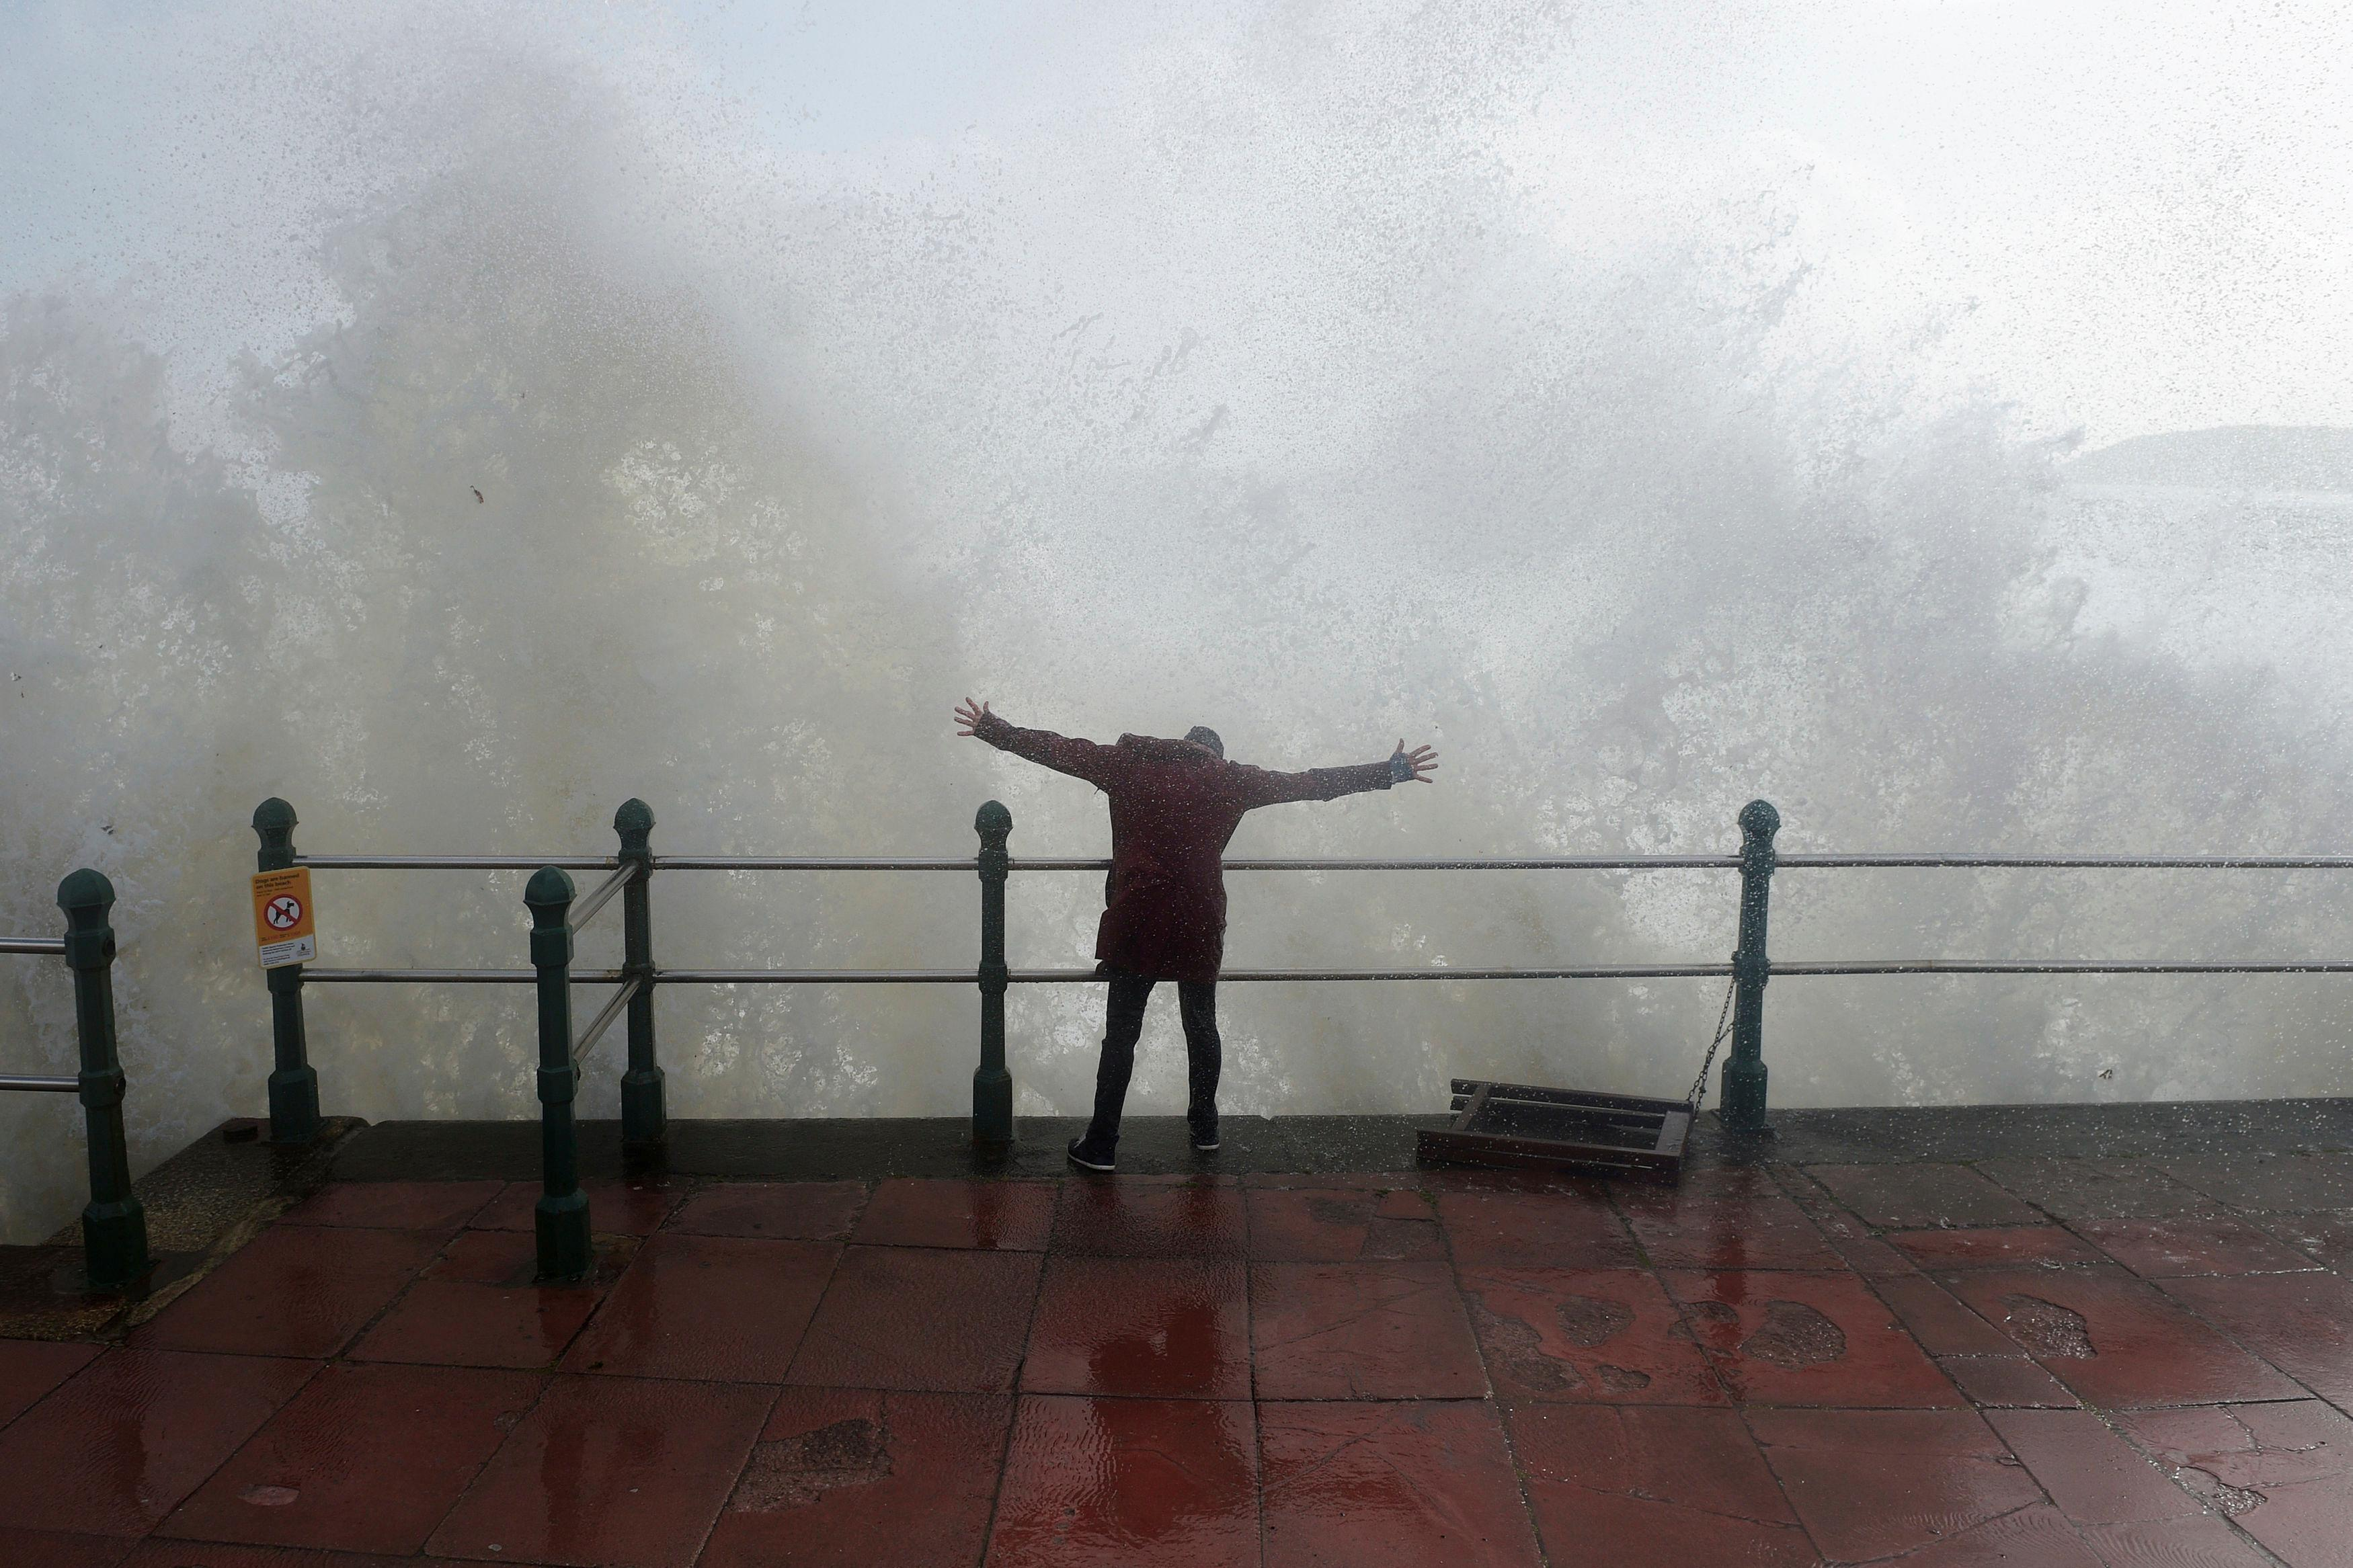 A woman stands as waves crash against the sea wall at Penzanze, Cornwall southwestern England, as the remnants of  Hurricane Ophelia begins to hit parts of Britain and Ireland. Ireland's meteorological service is predicting wind gusts of 120 kph to 150 kph (75 mph to 93 mph), sparking fears of travel chaos. Some flights have been cancelled, and aviation officials are warning travelers to check the latest information before going to the airport Monday.  (Ben Birchall/PA via AP)